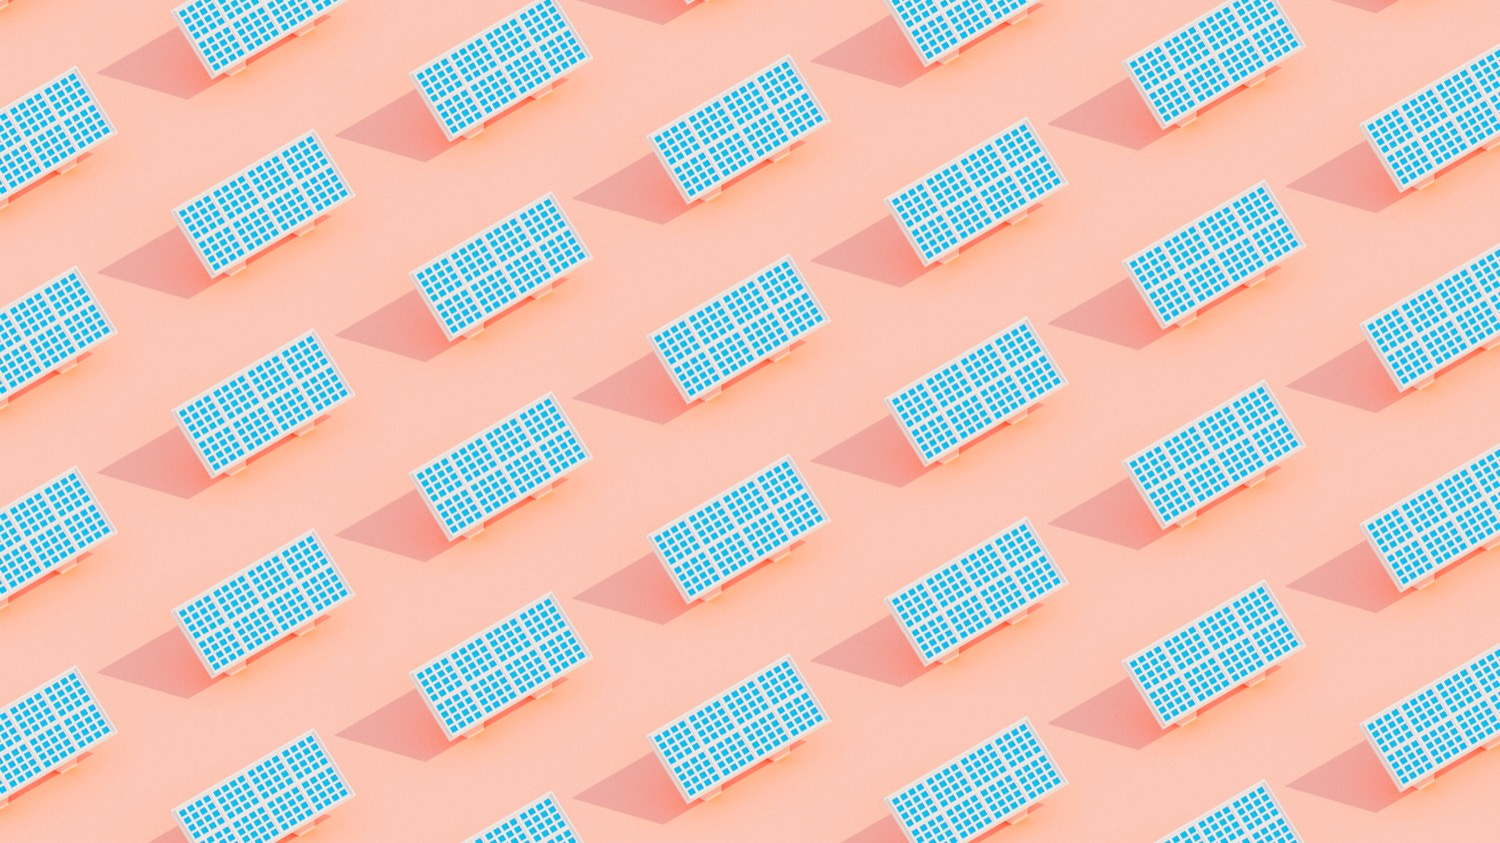 an illustration of repeated identical rows of solar panels